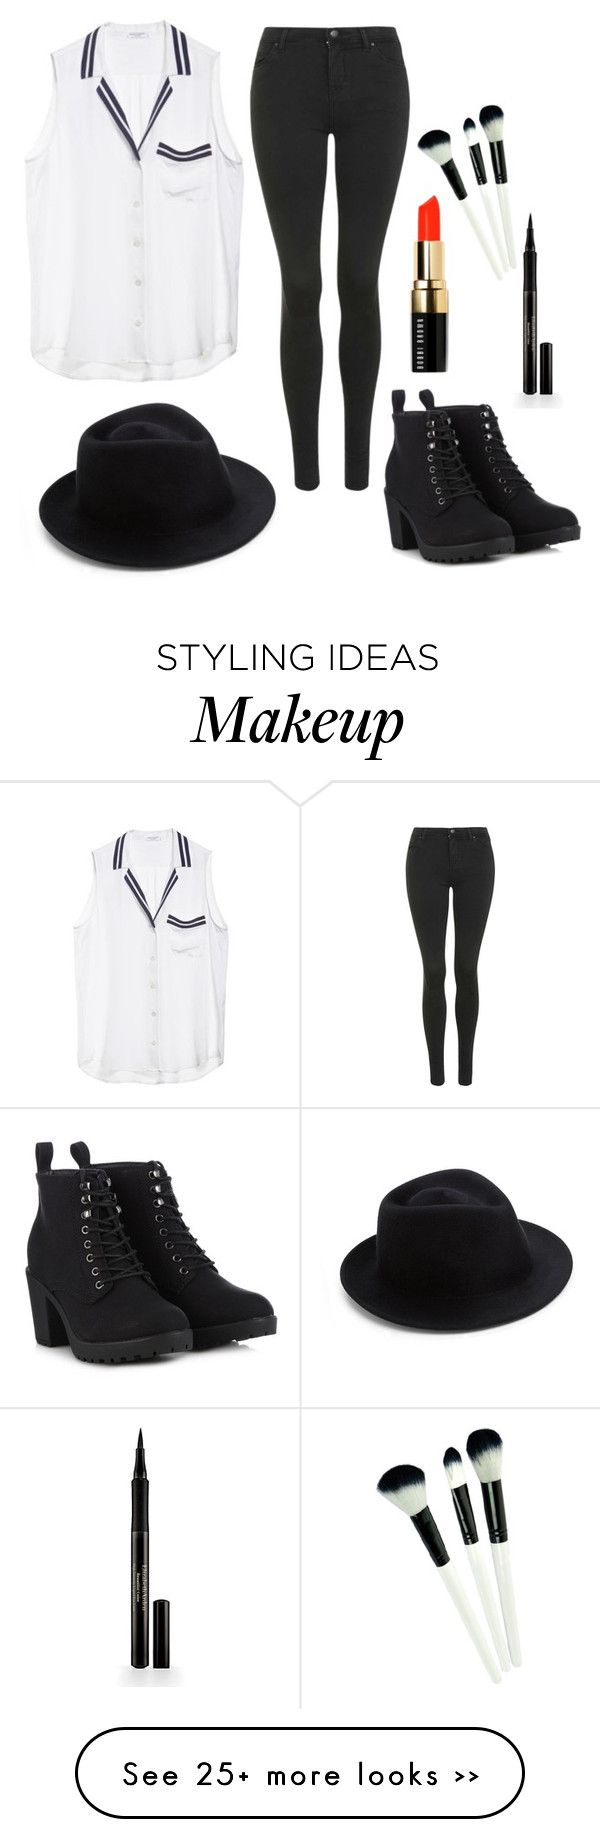 """Untitled #310"" by oreo23 on Polyvore"